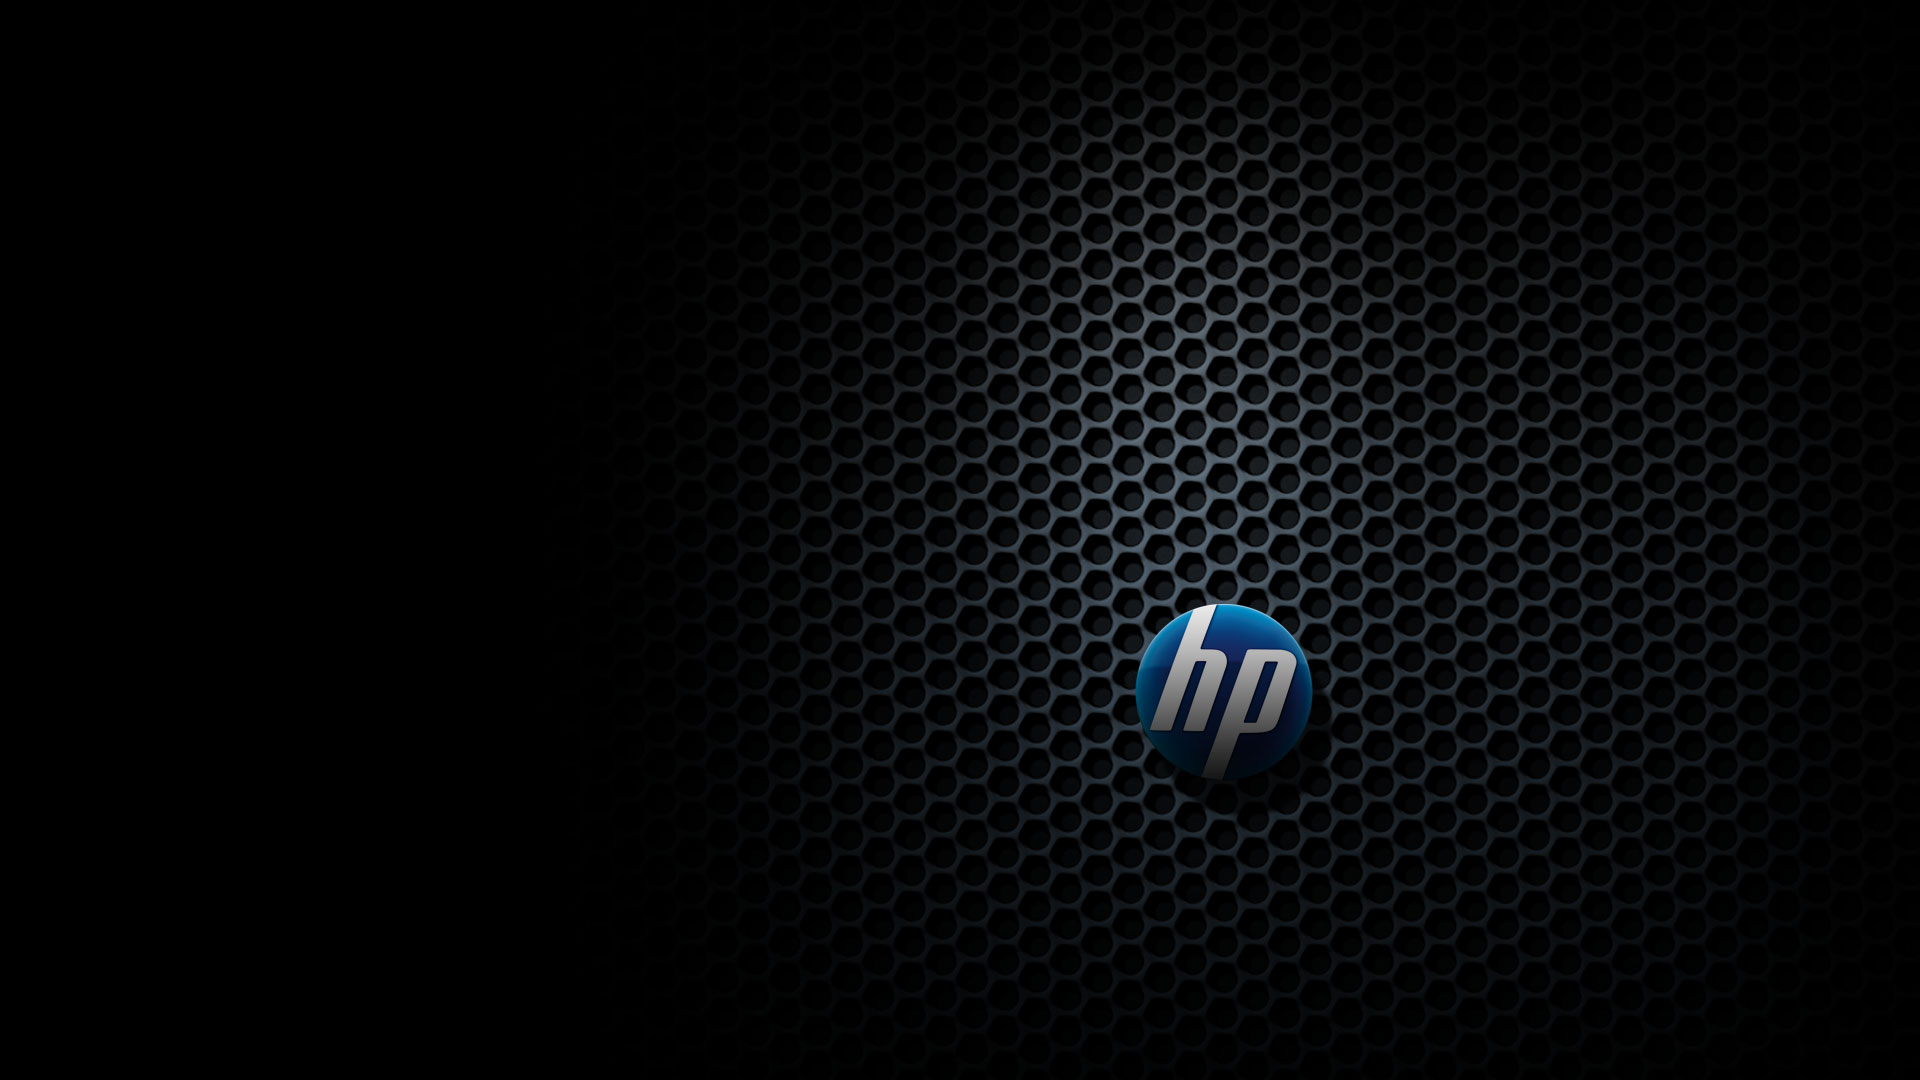 HD HP Wallpapers Group (86+)